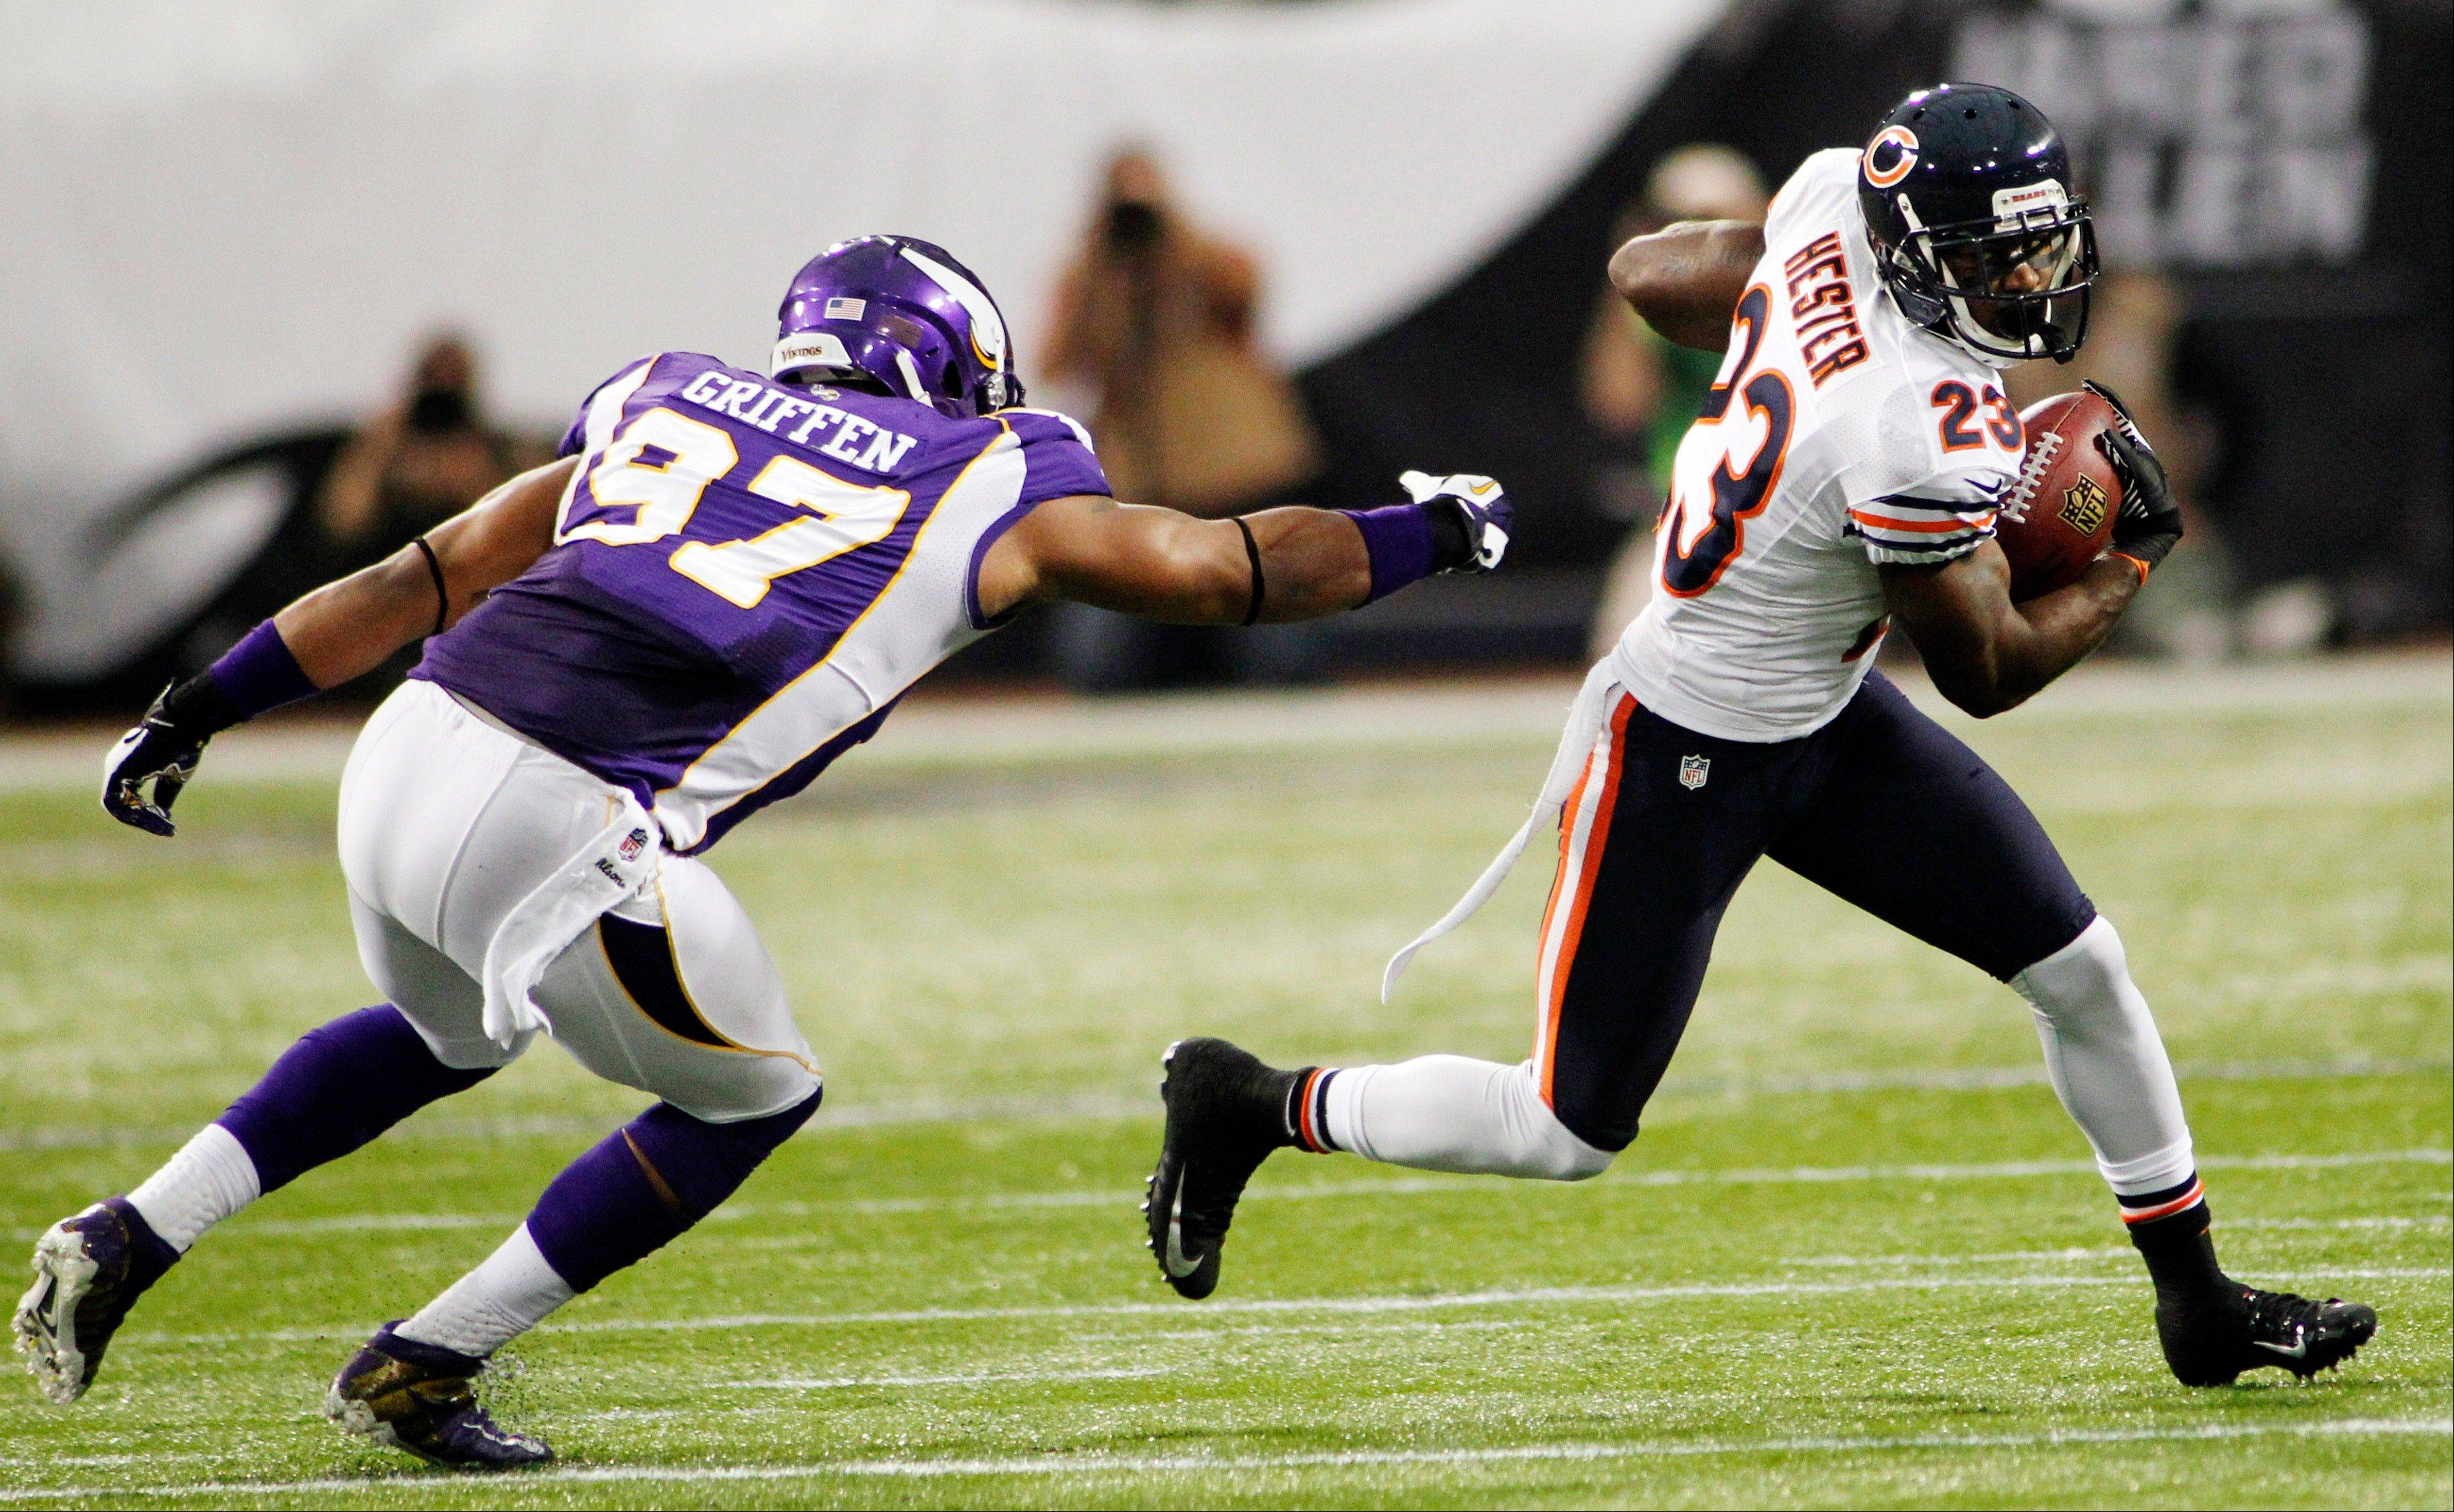 Chicago Bears wide receiver Devin Hester runs from Minnesota Vikings defensive end Everson Griffen during the first half.